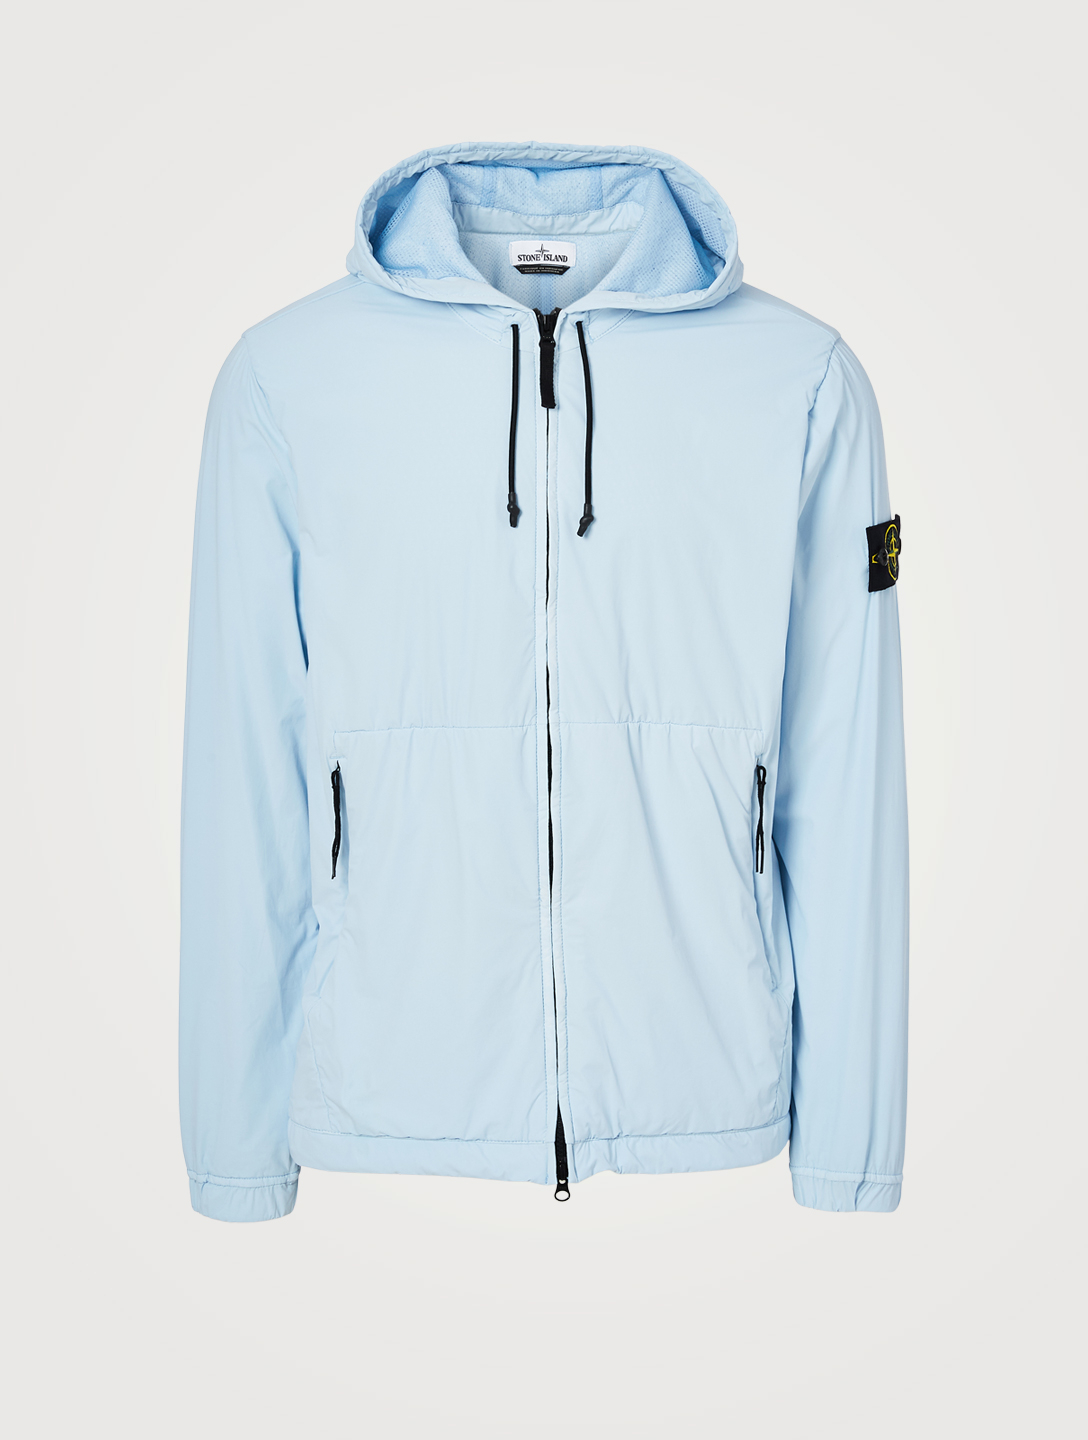 STONE ISLAND Skin Touch Nylon-TC Jacket Men's Blue